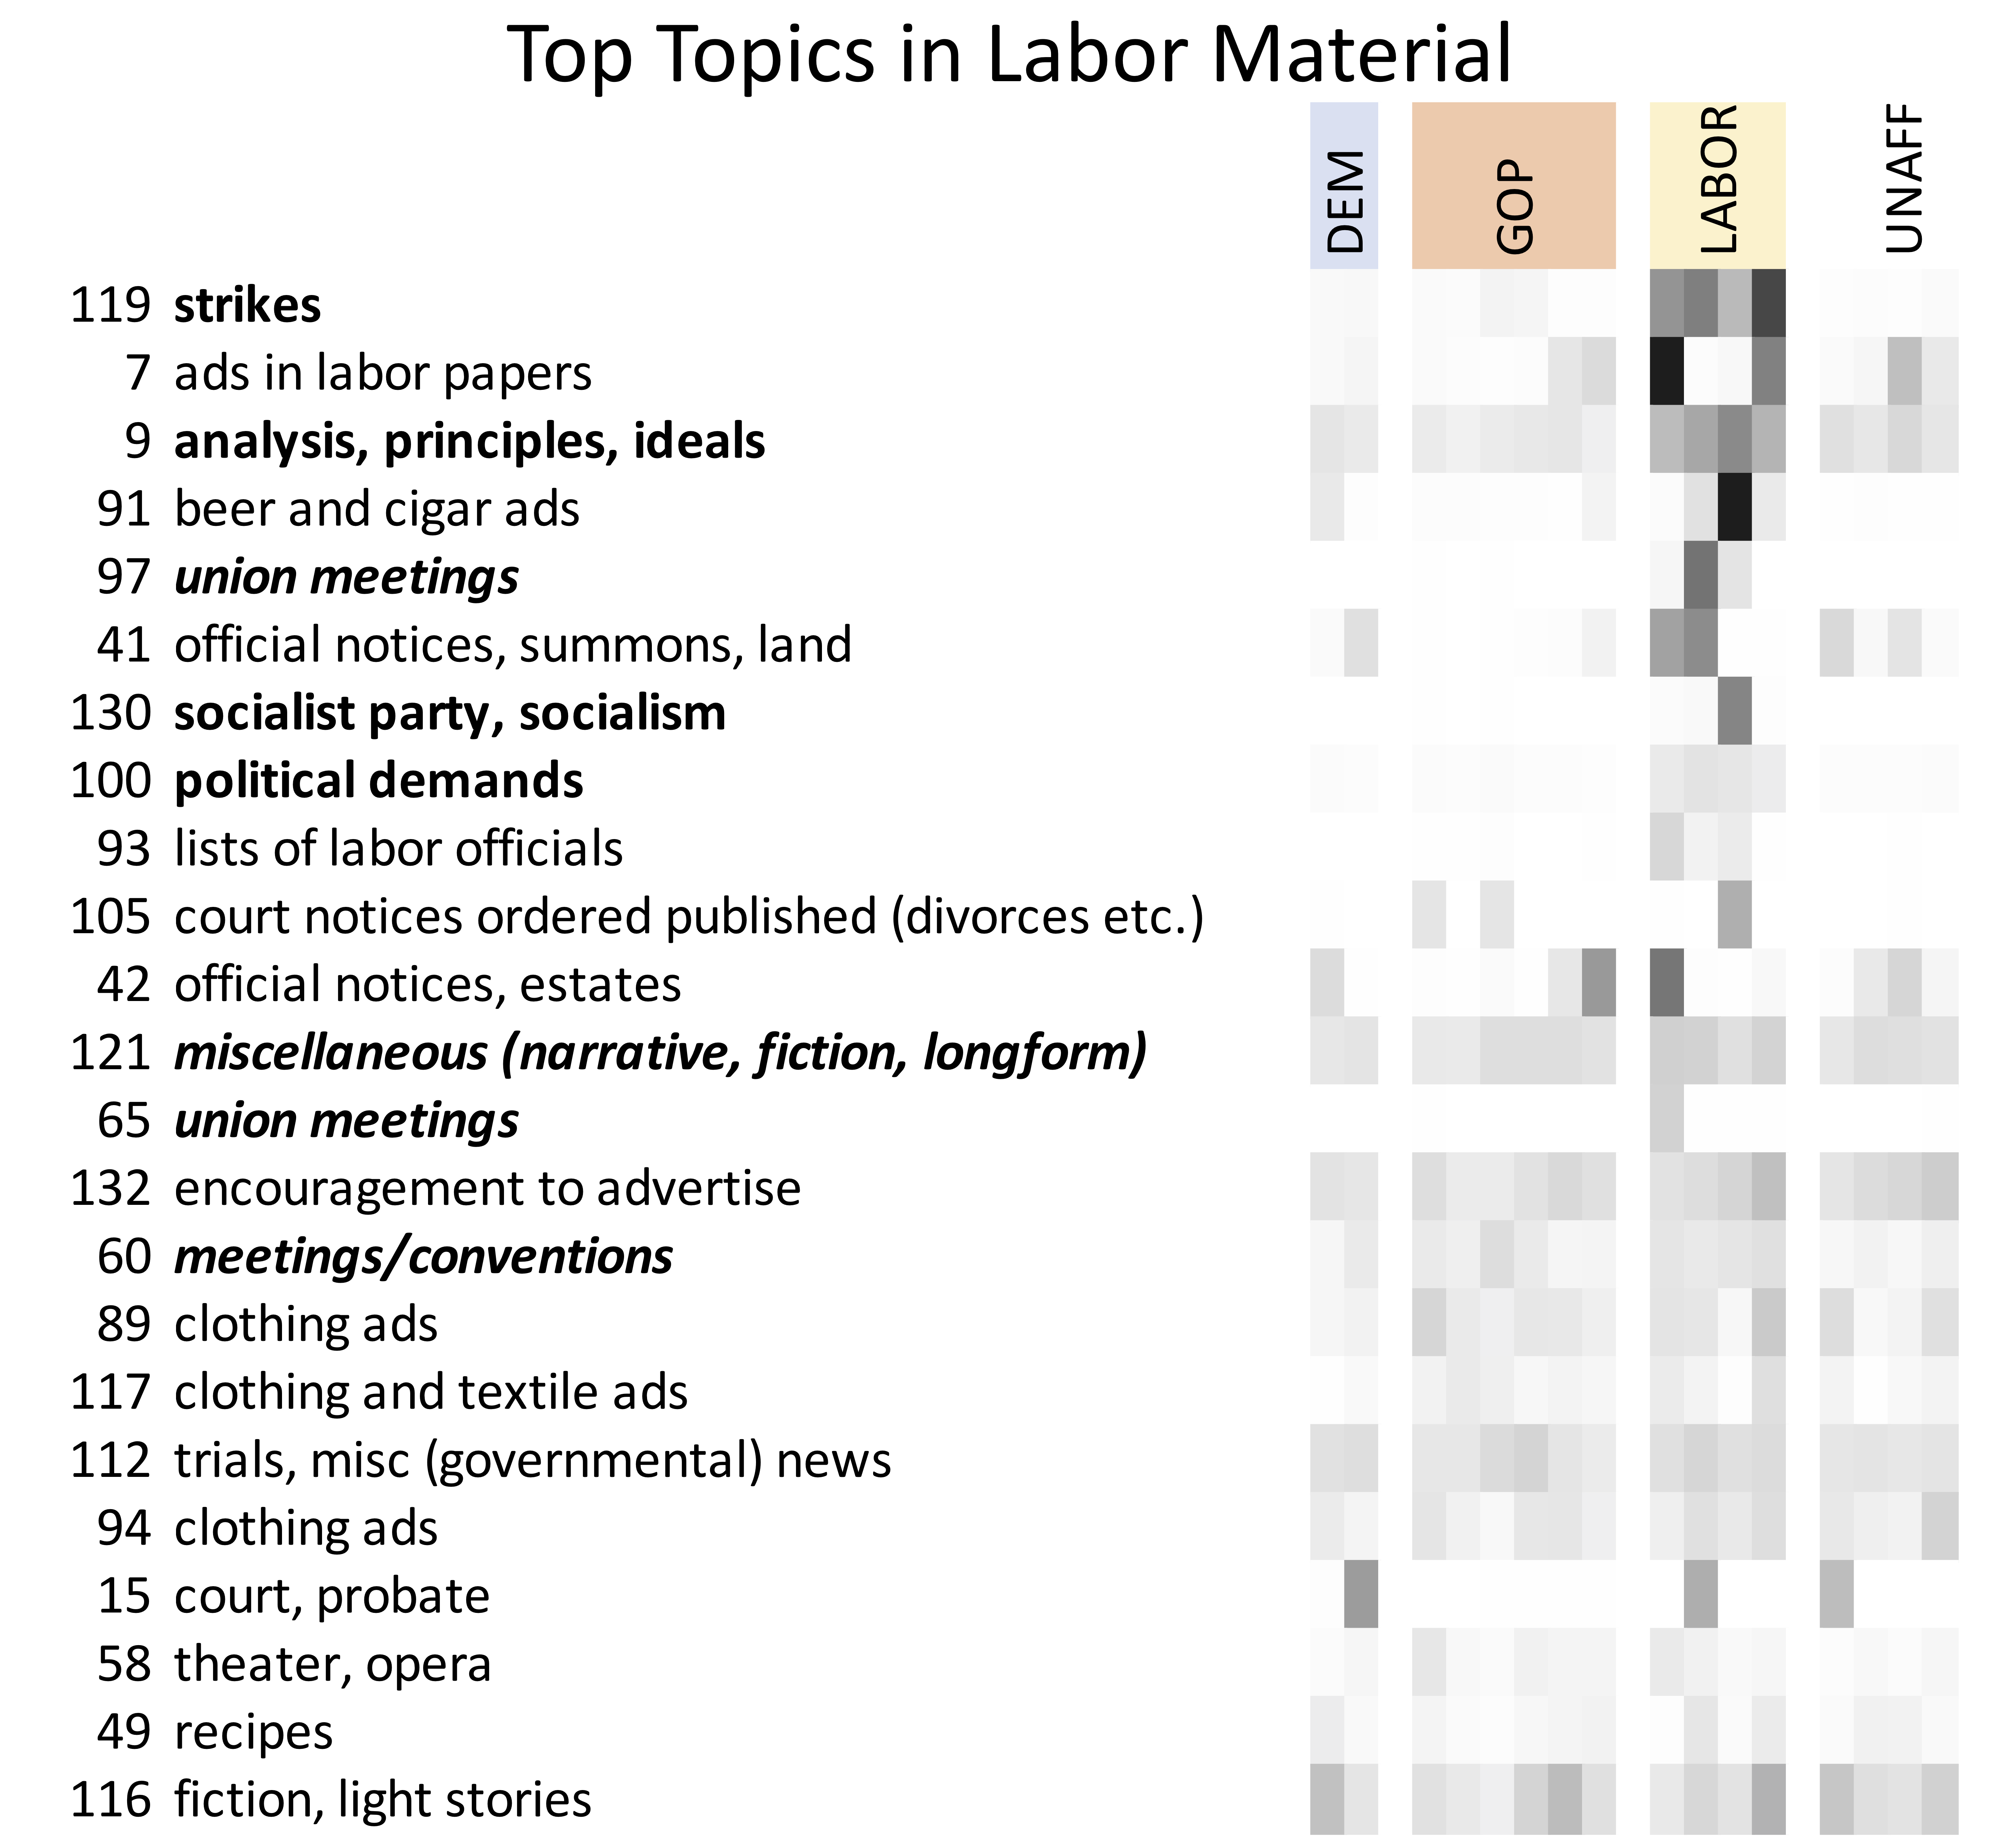 Heat map showing the topics most prominent in labor materials.